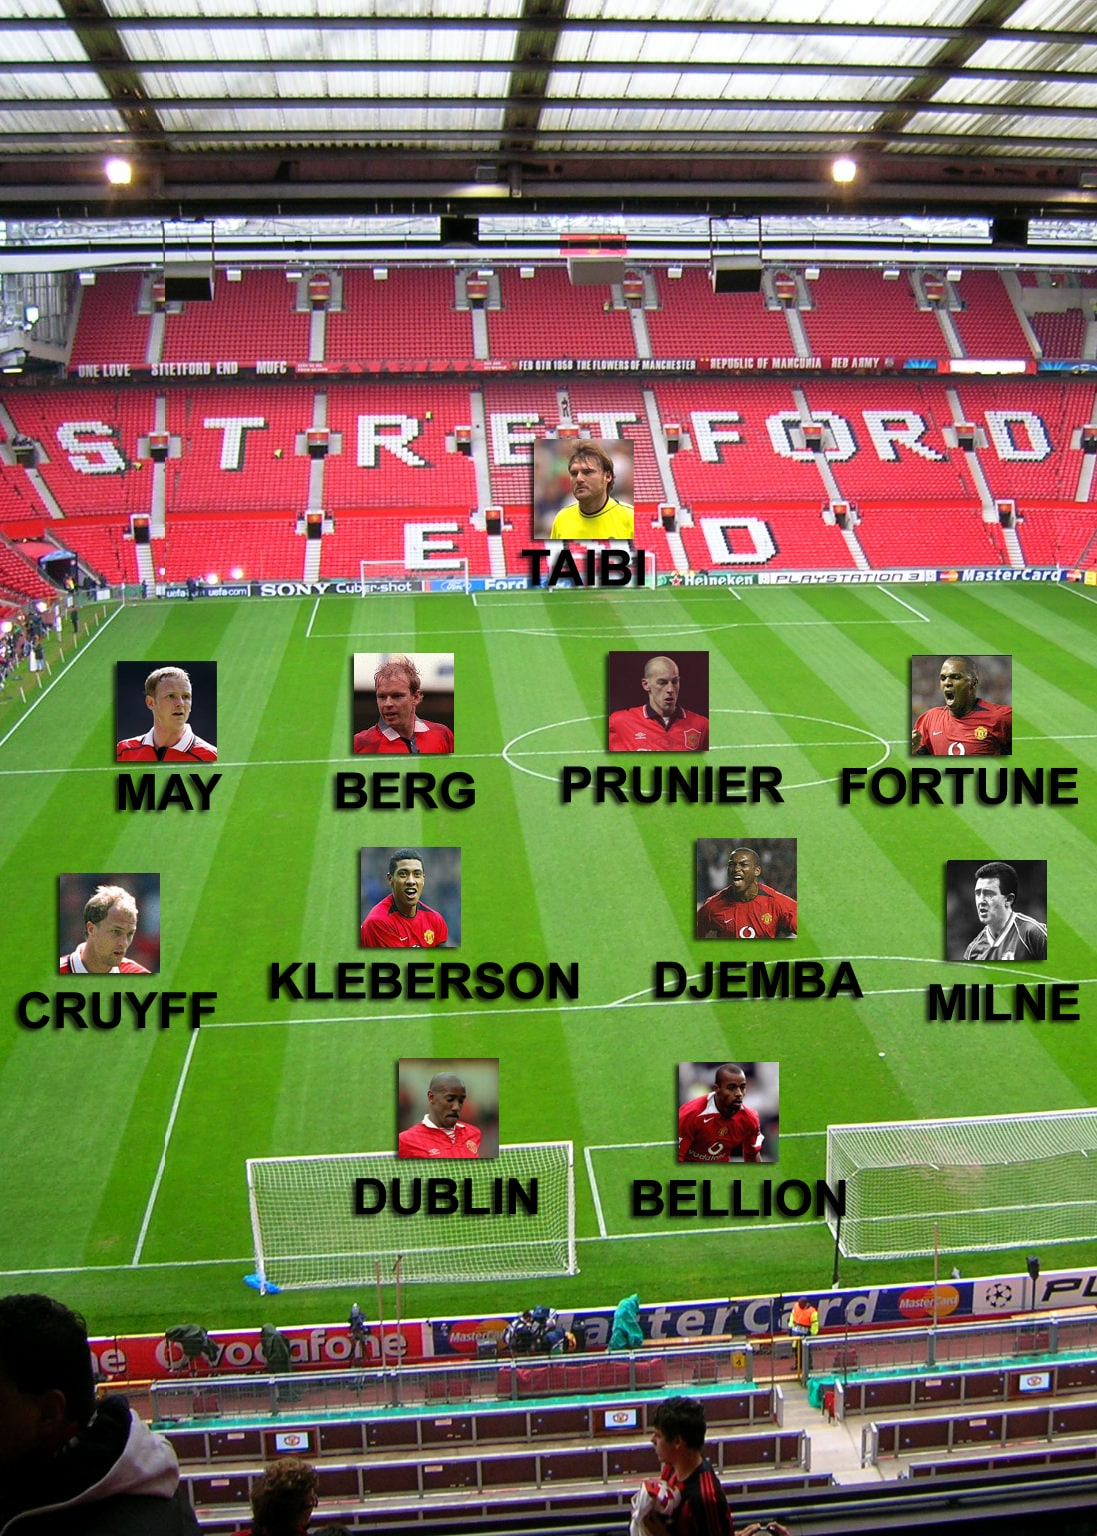 Fergie's Worst Ever XI (click for larger image)